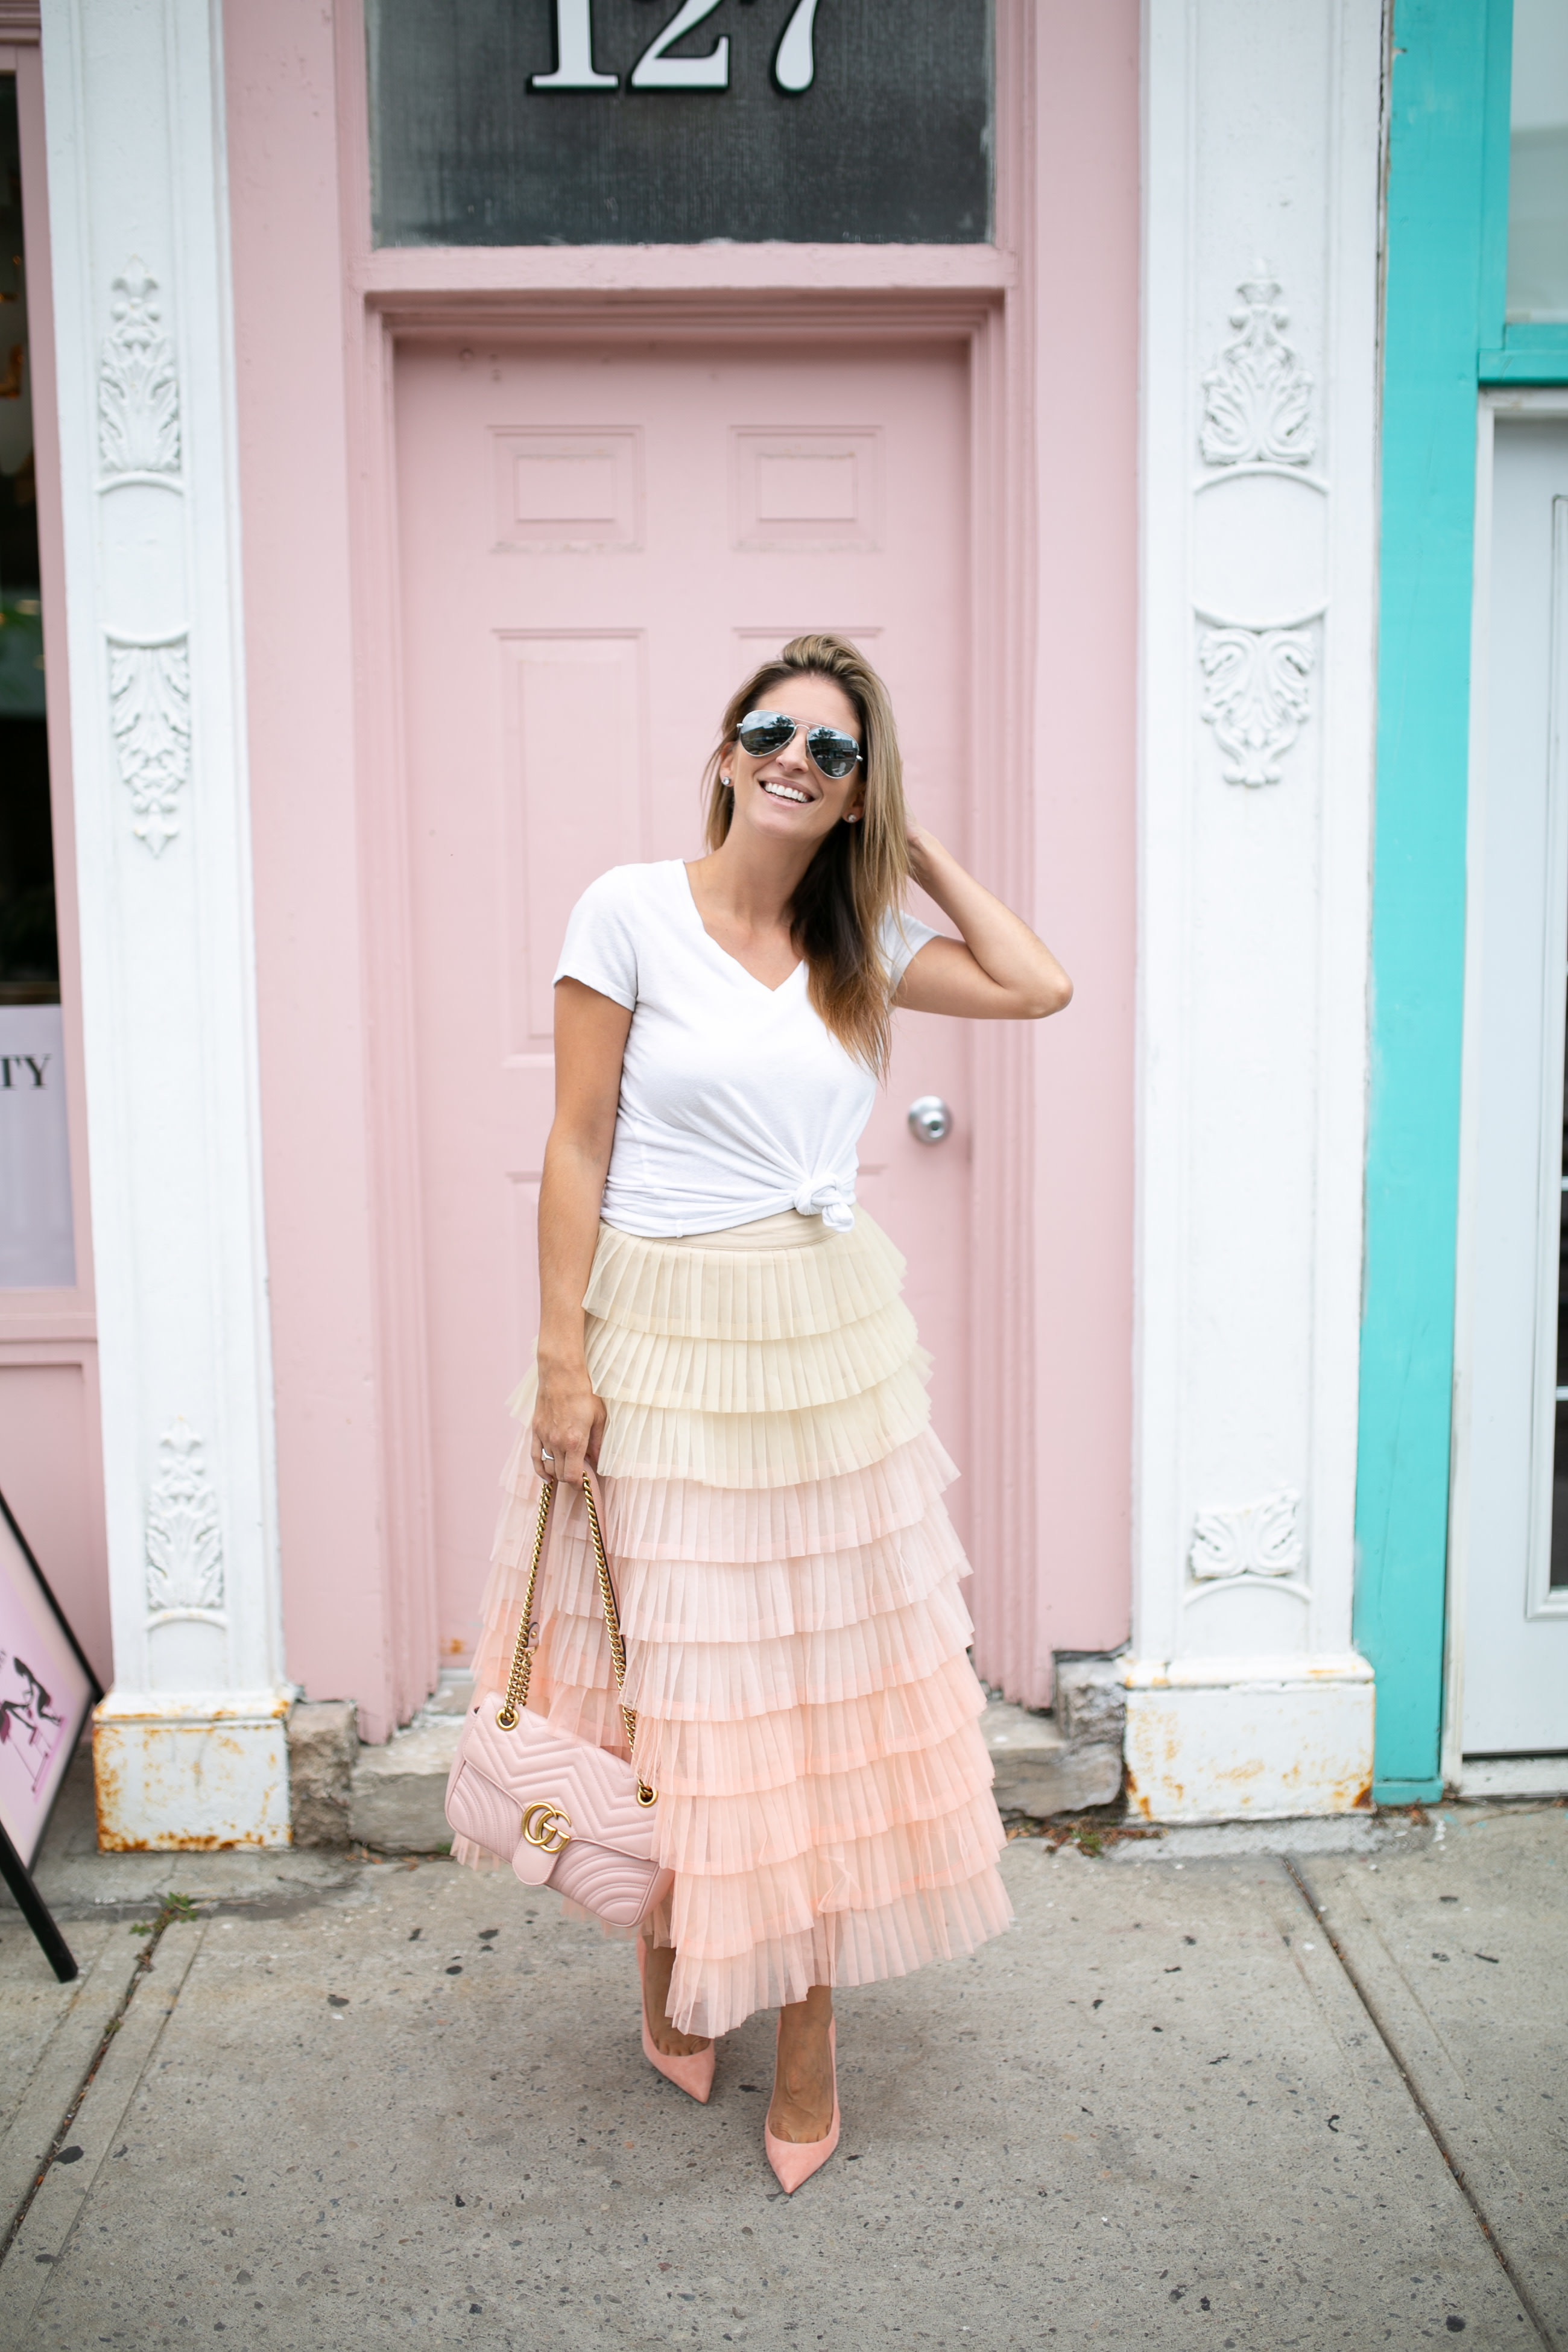 Sweetest Dream Chicwish Gradient Tiered Mesh Skirt; tiered maxi skirt; how to style a tulle skirt; fall fashion; durham region blogger Mandy Furnis; sparkleshinylove; whitby style blogger